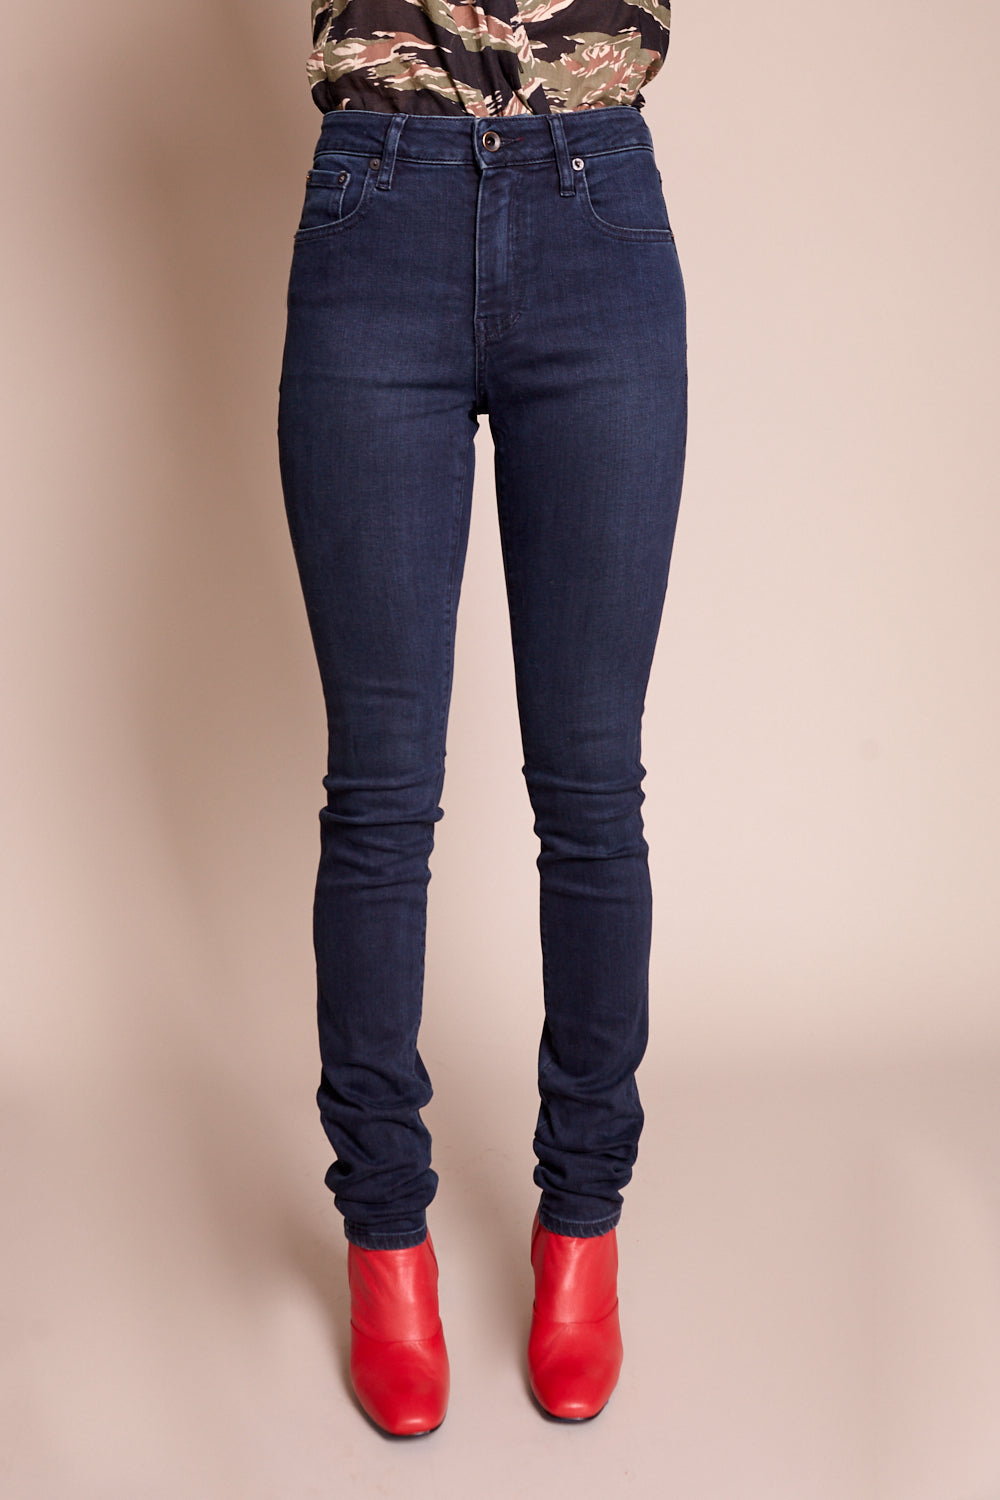 Raleigh Denim Workshop Haywood High Rise Skinny Jean in Canon - Vert & Vogue